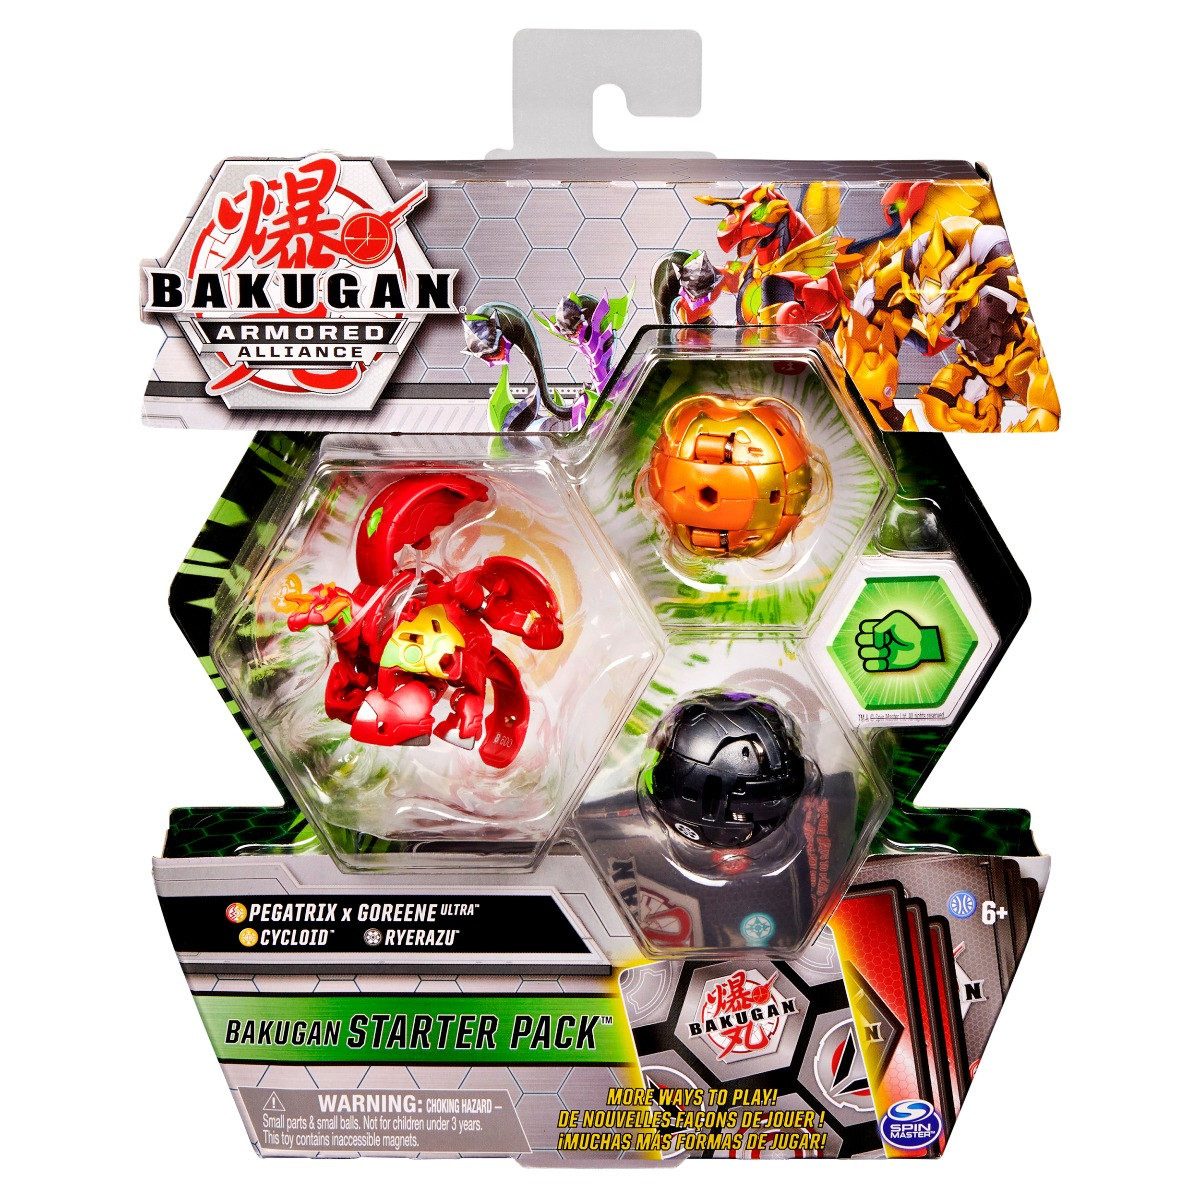 Set Bakugan Armored Alliance, Pegatrix x Goreene Ultra, Cycloid, Ryerazu 20125408